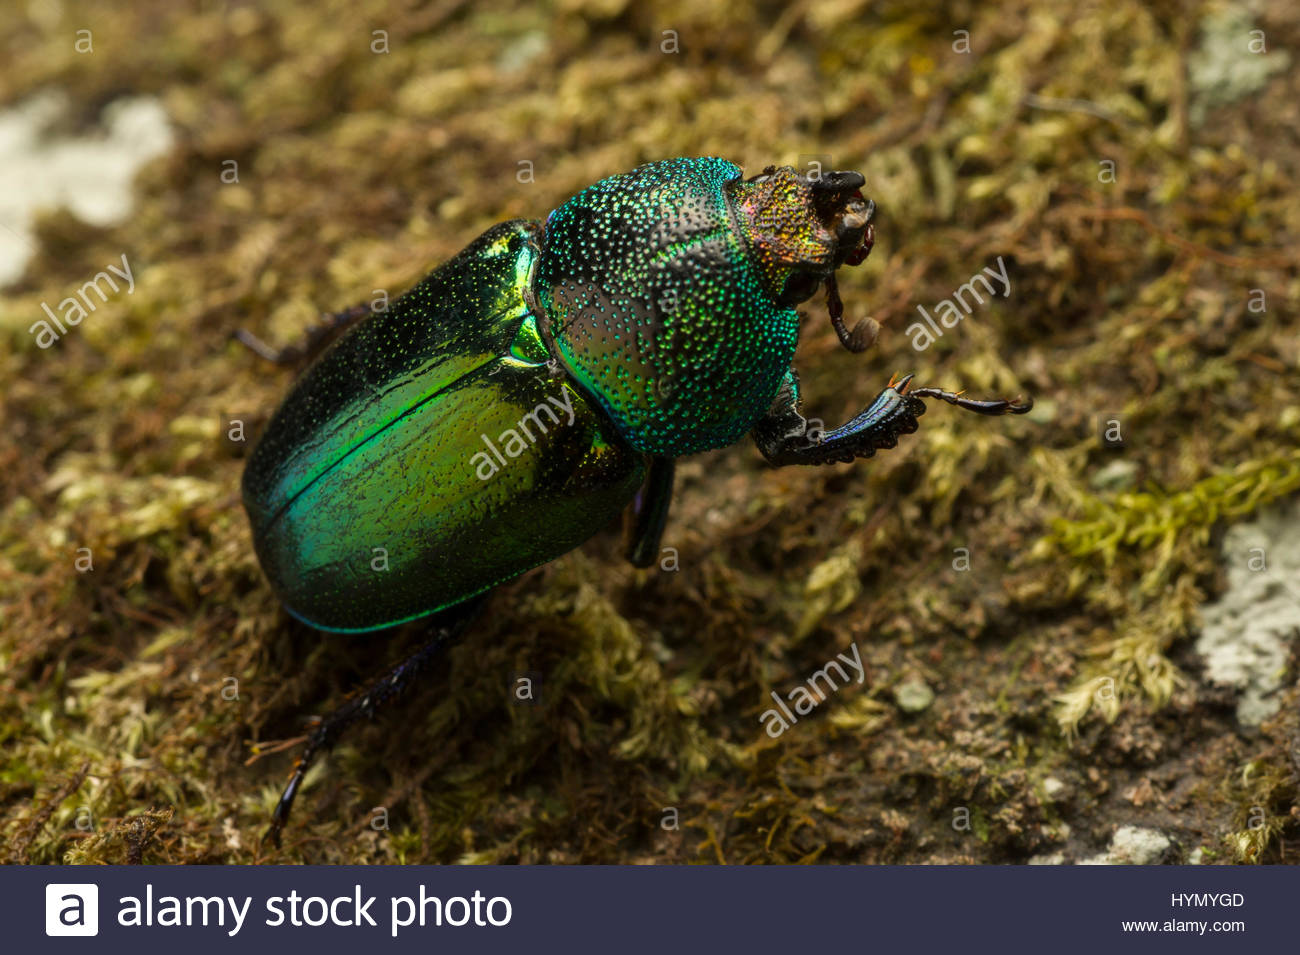 Christmas Beetle.An Extreme Close Up View Of An Iridescent Green Christmas